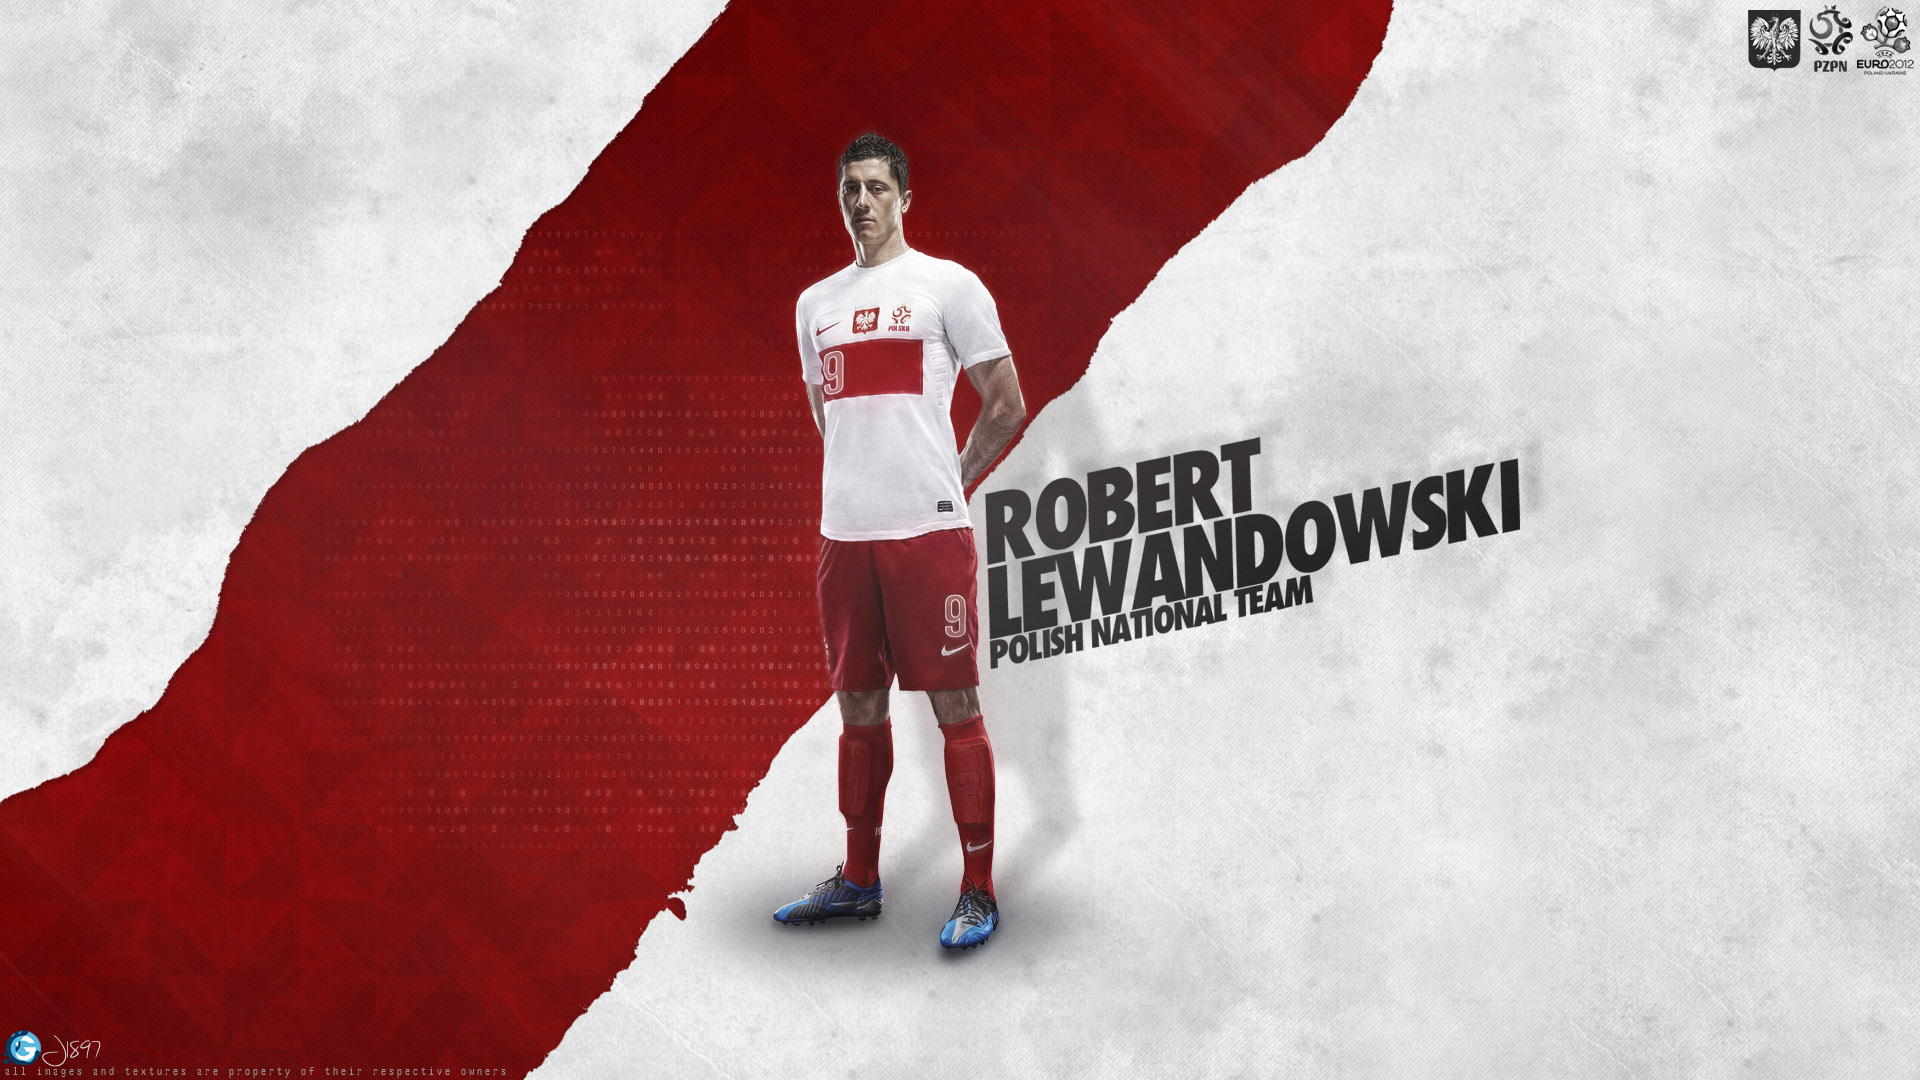 Robert Lewandowski by J1897